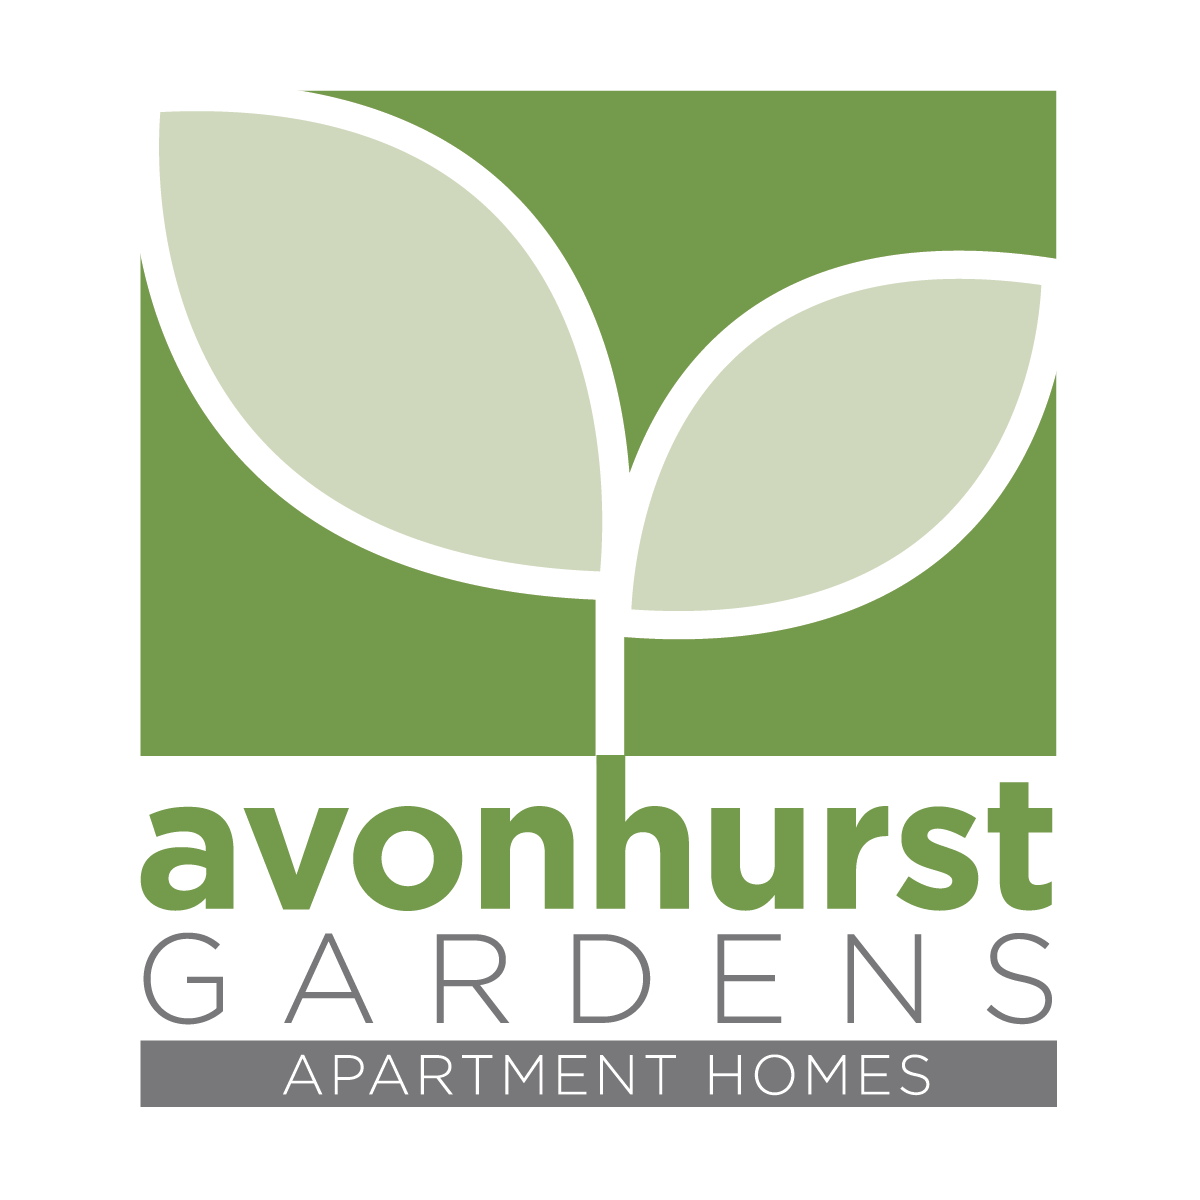 Avonhurst Referral Program